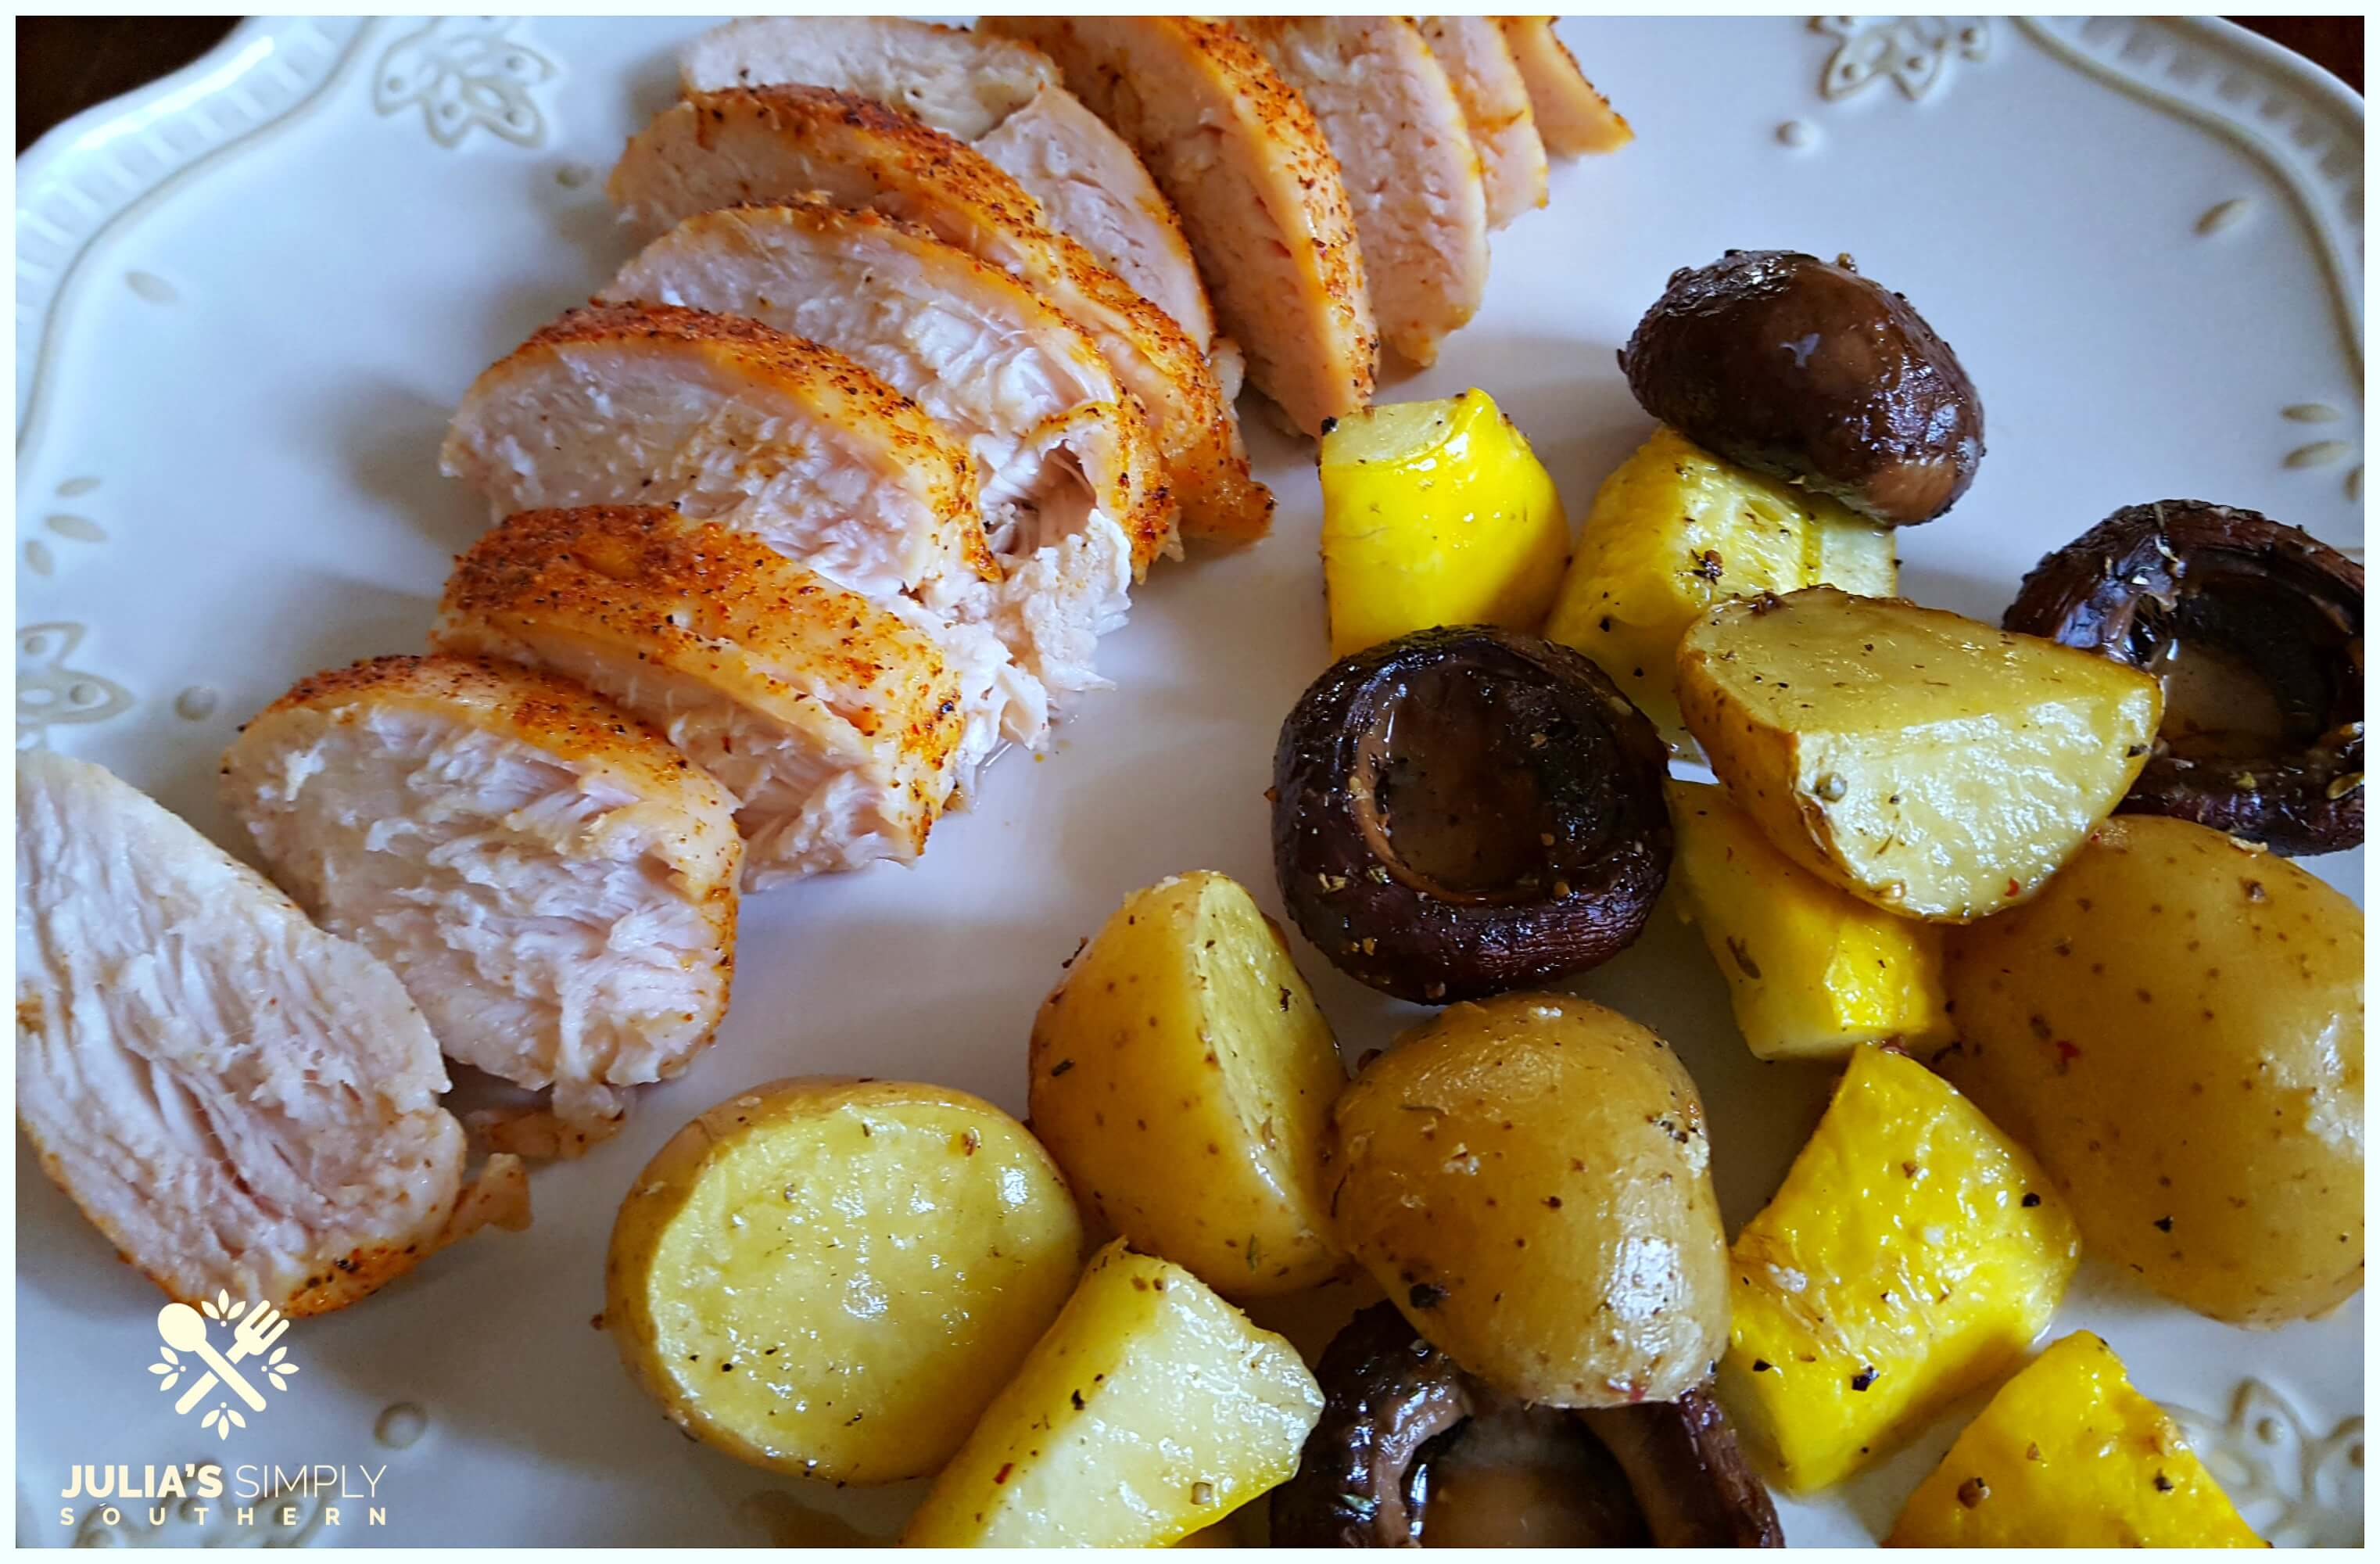 Roasted Vegetables with chicken breast - oven baked recipe